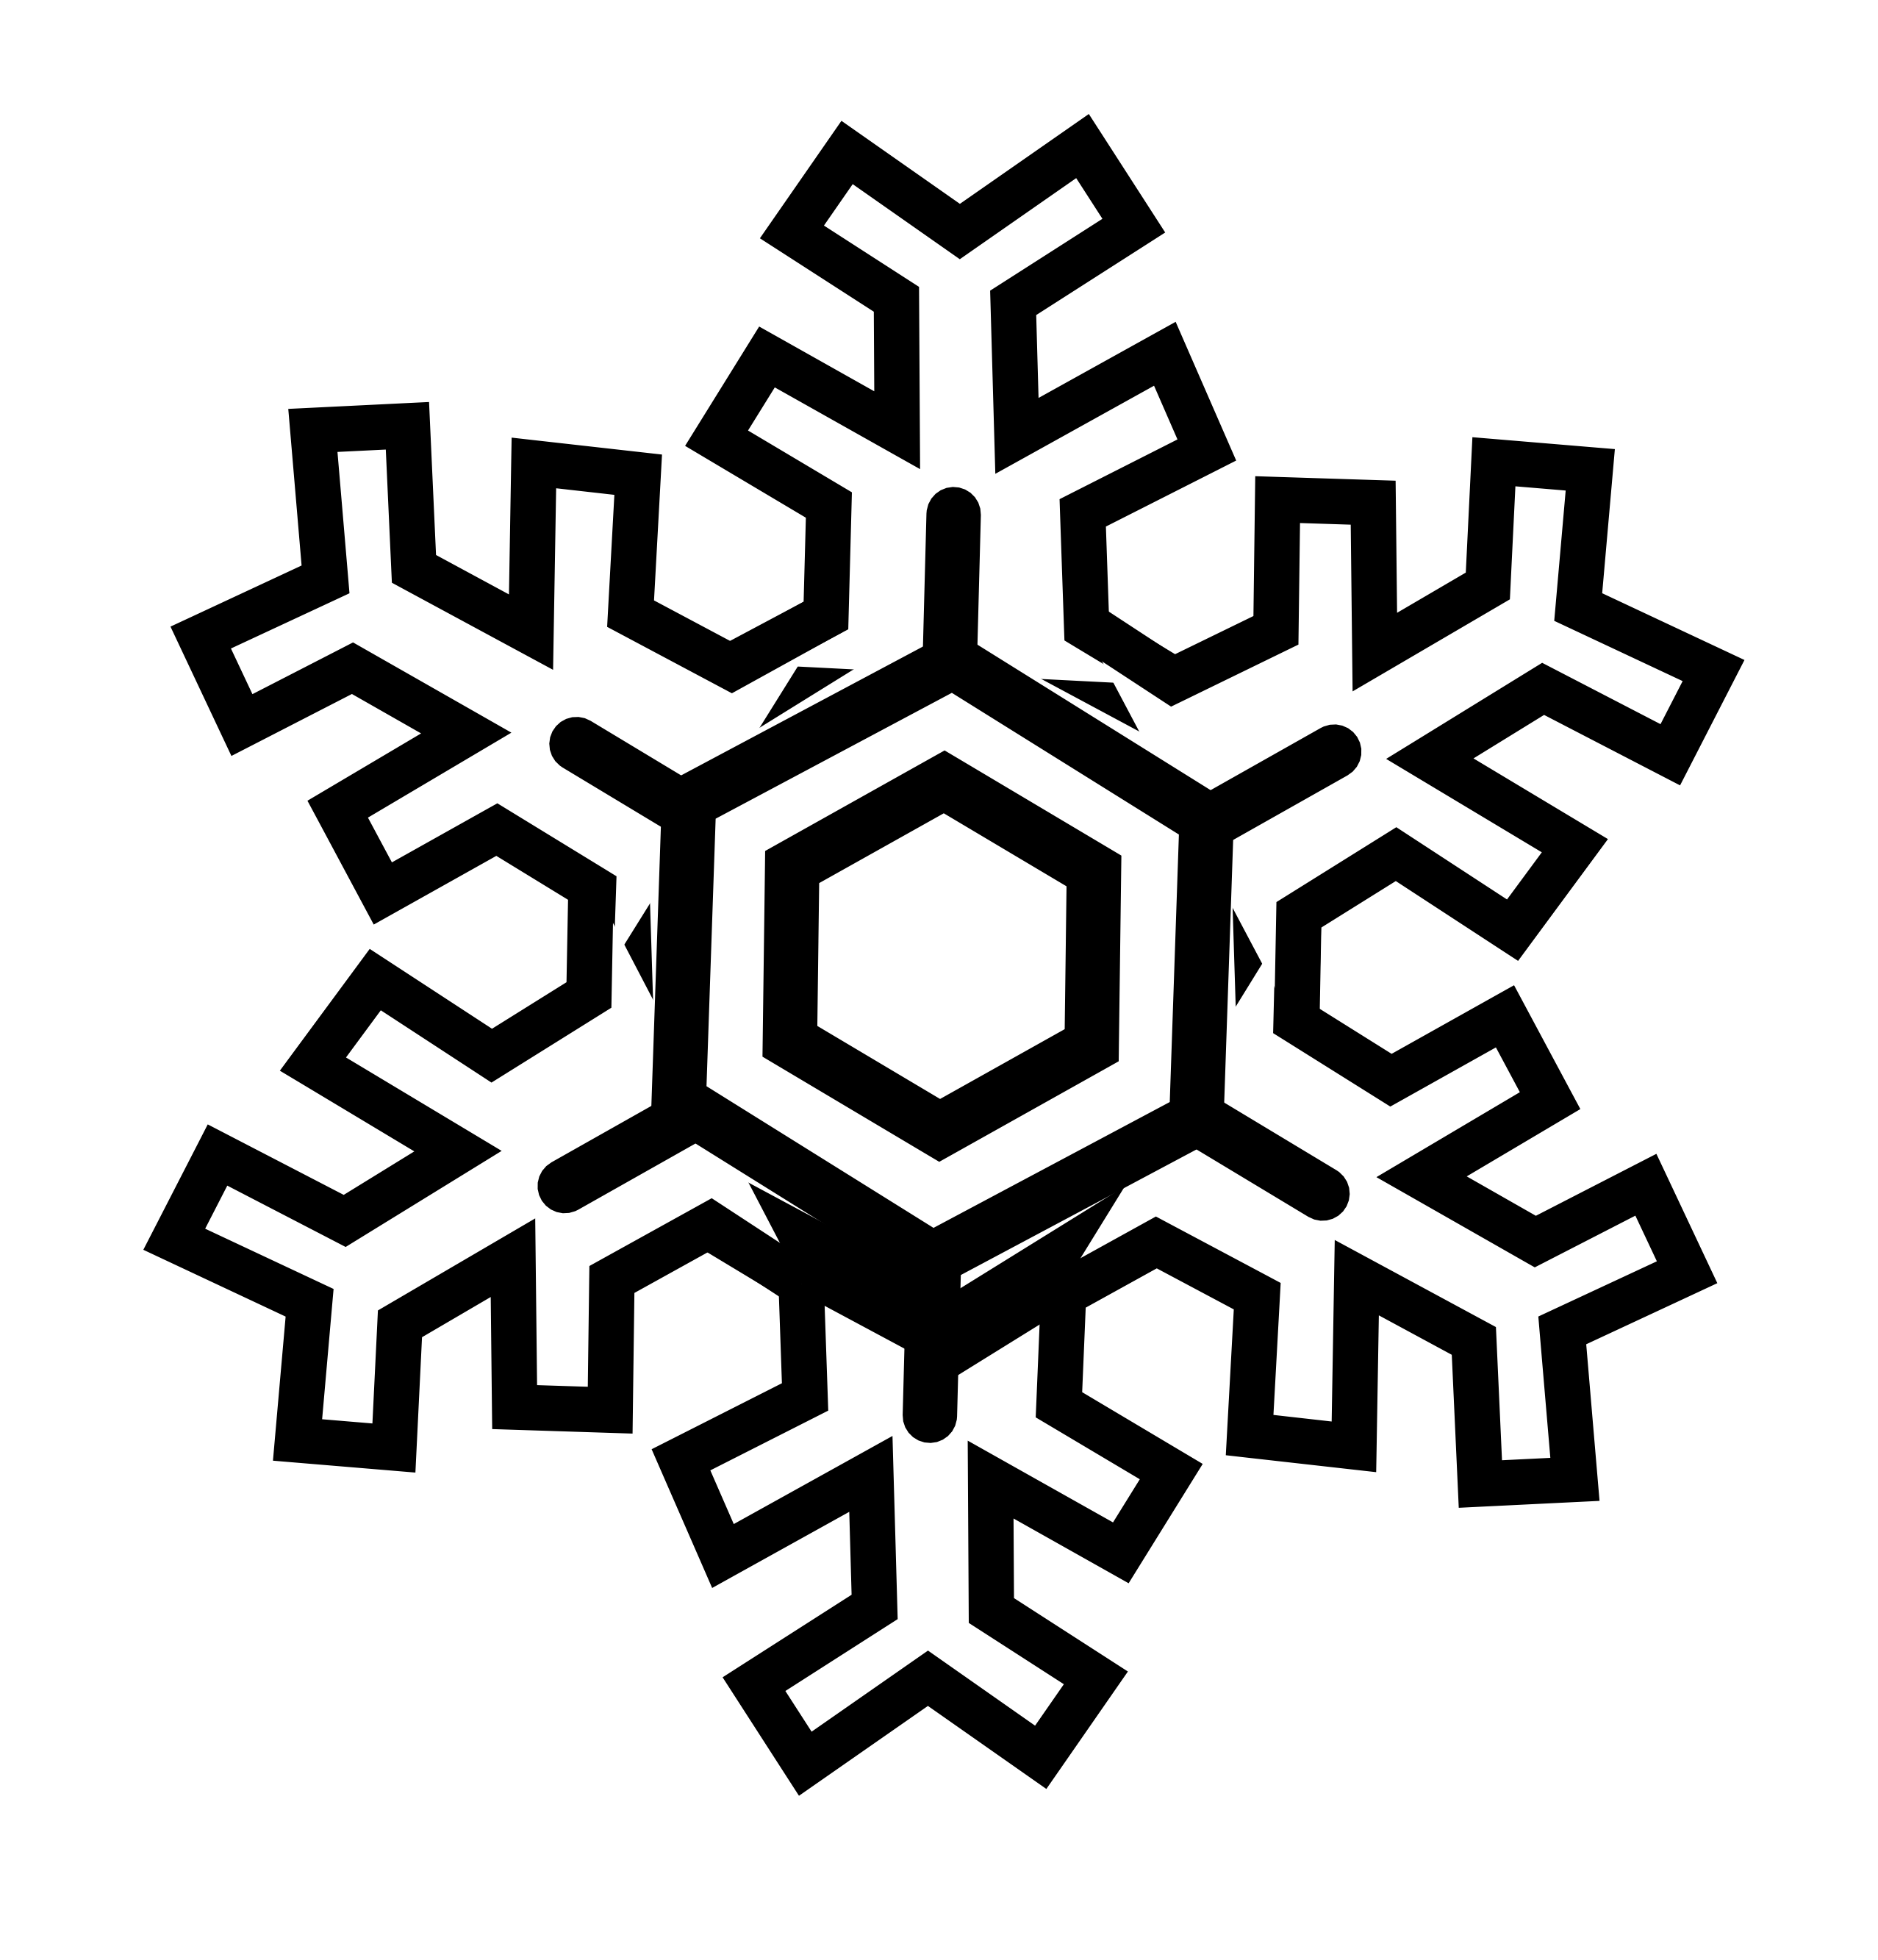 Fancy snowflake free clipart jpg transparent library Snowflake Clipart Black And White | Clipart Panda - Free Clipart Images jpg transparent library